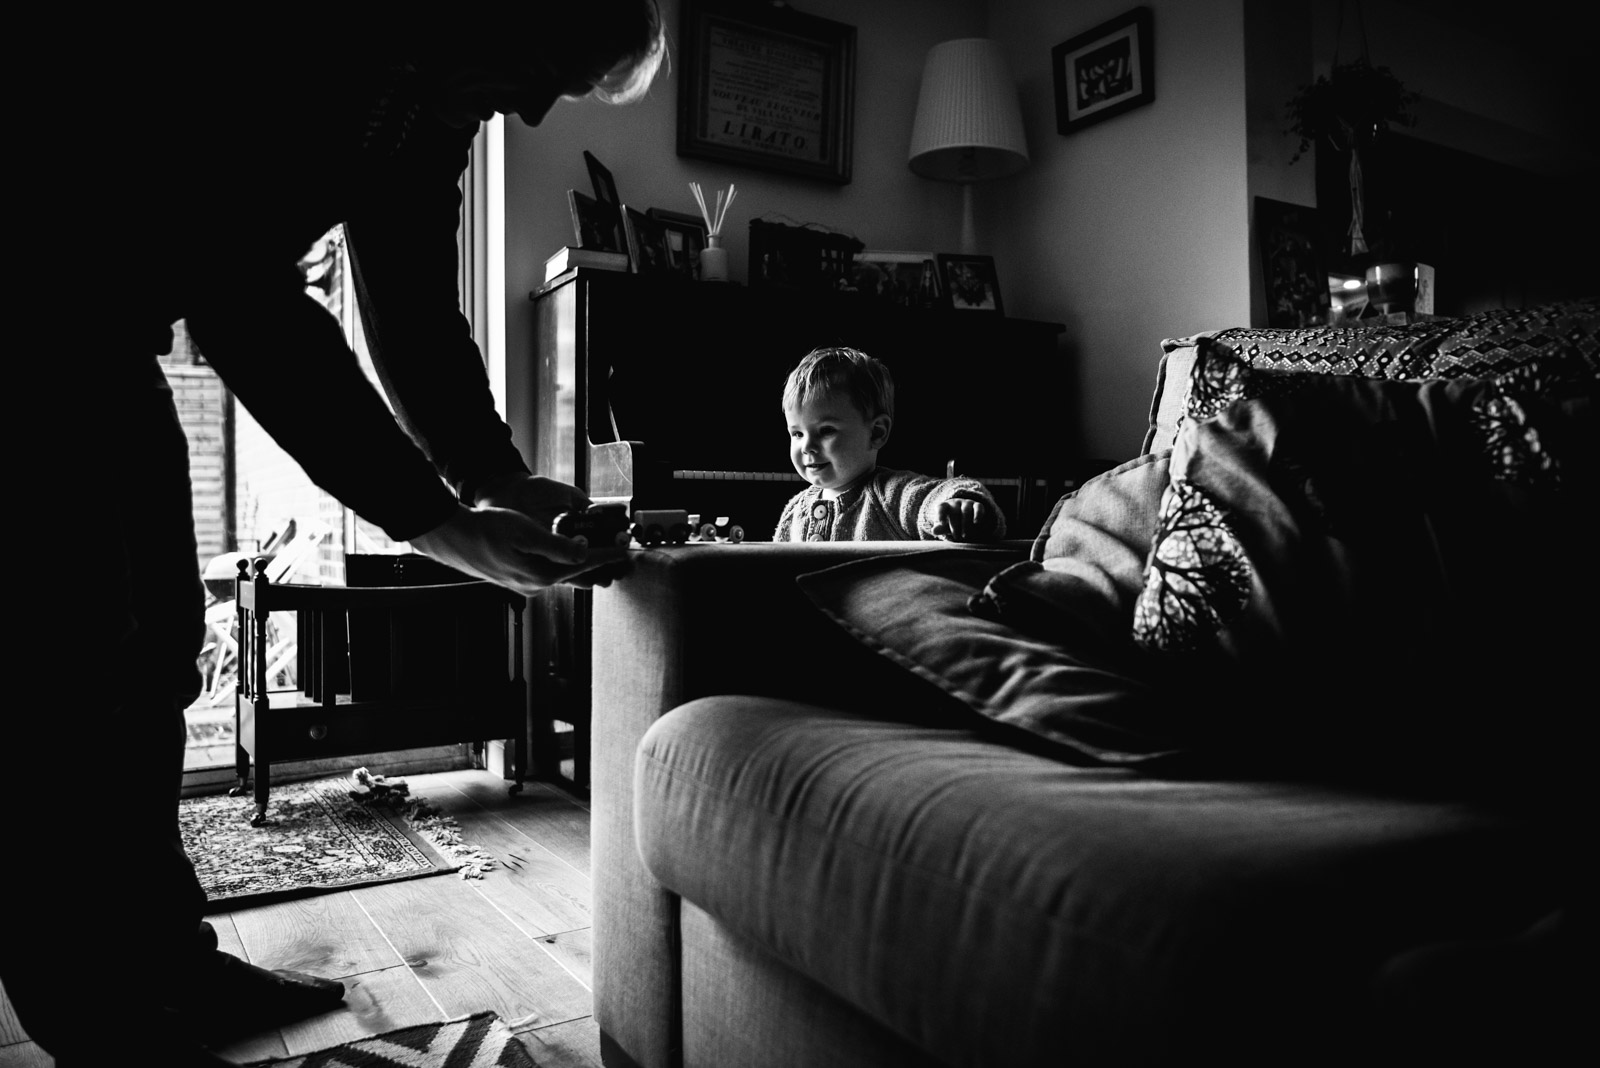 Emotive family photography, boy playing with train, taken by Berkshire based The Ginger Collective photography